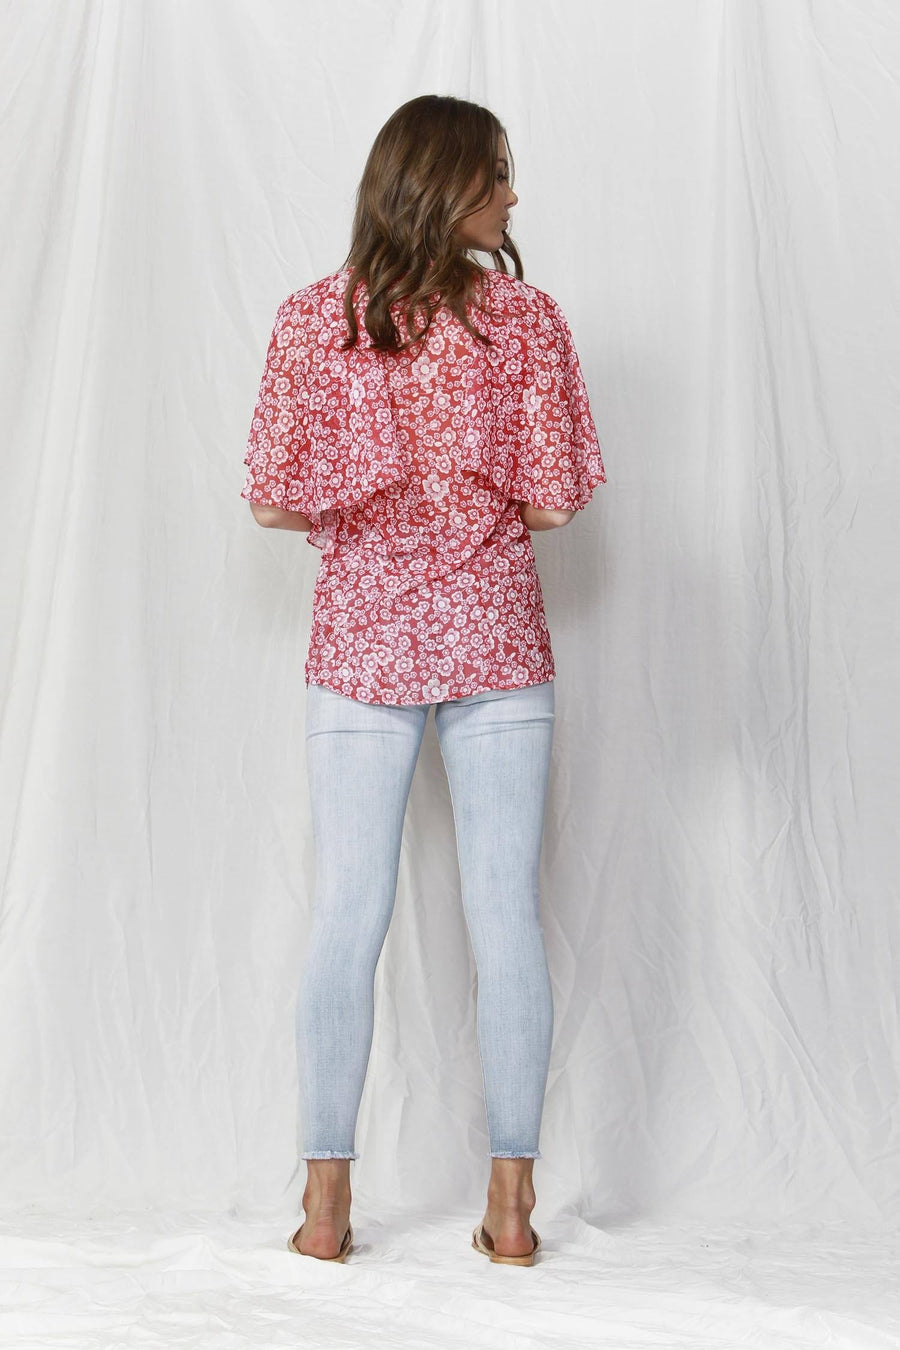 Bronte Top in Positano Print